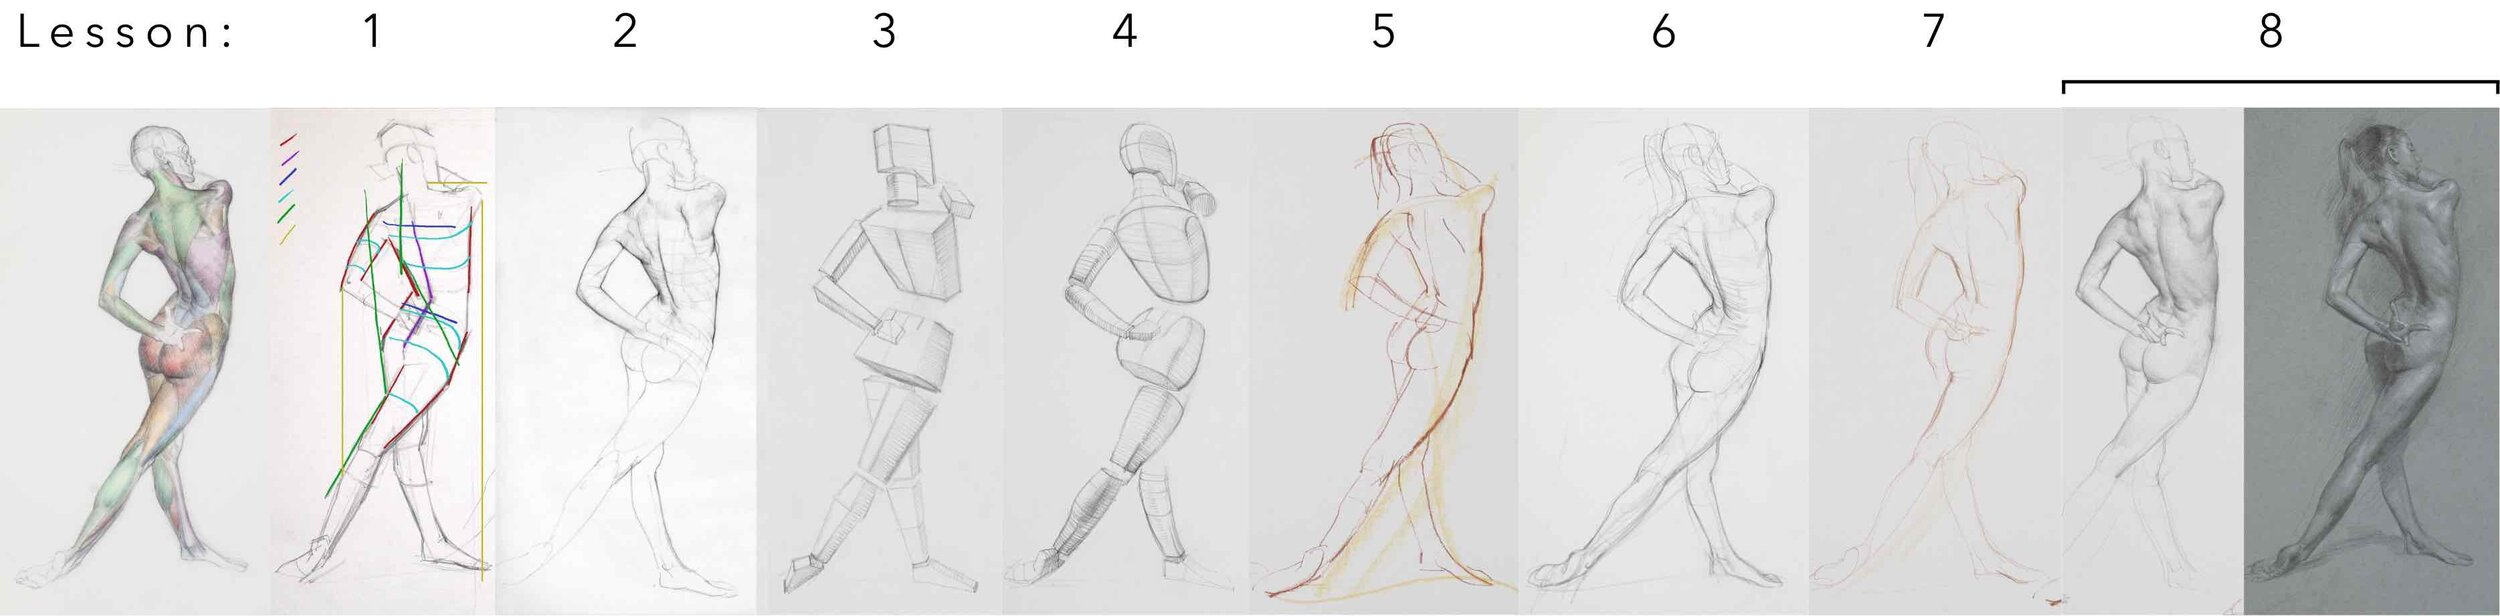 Header All Lessons Scott Breton Form Gesture Anatomy Life Drawing 2.jpg